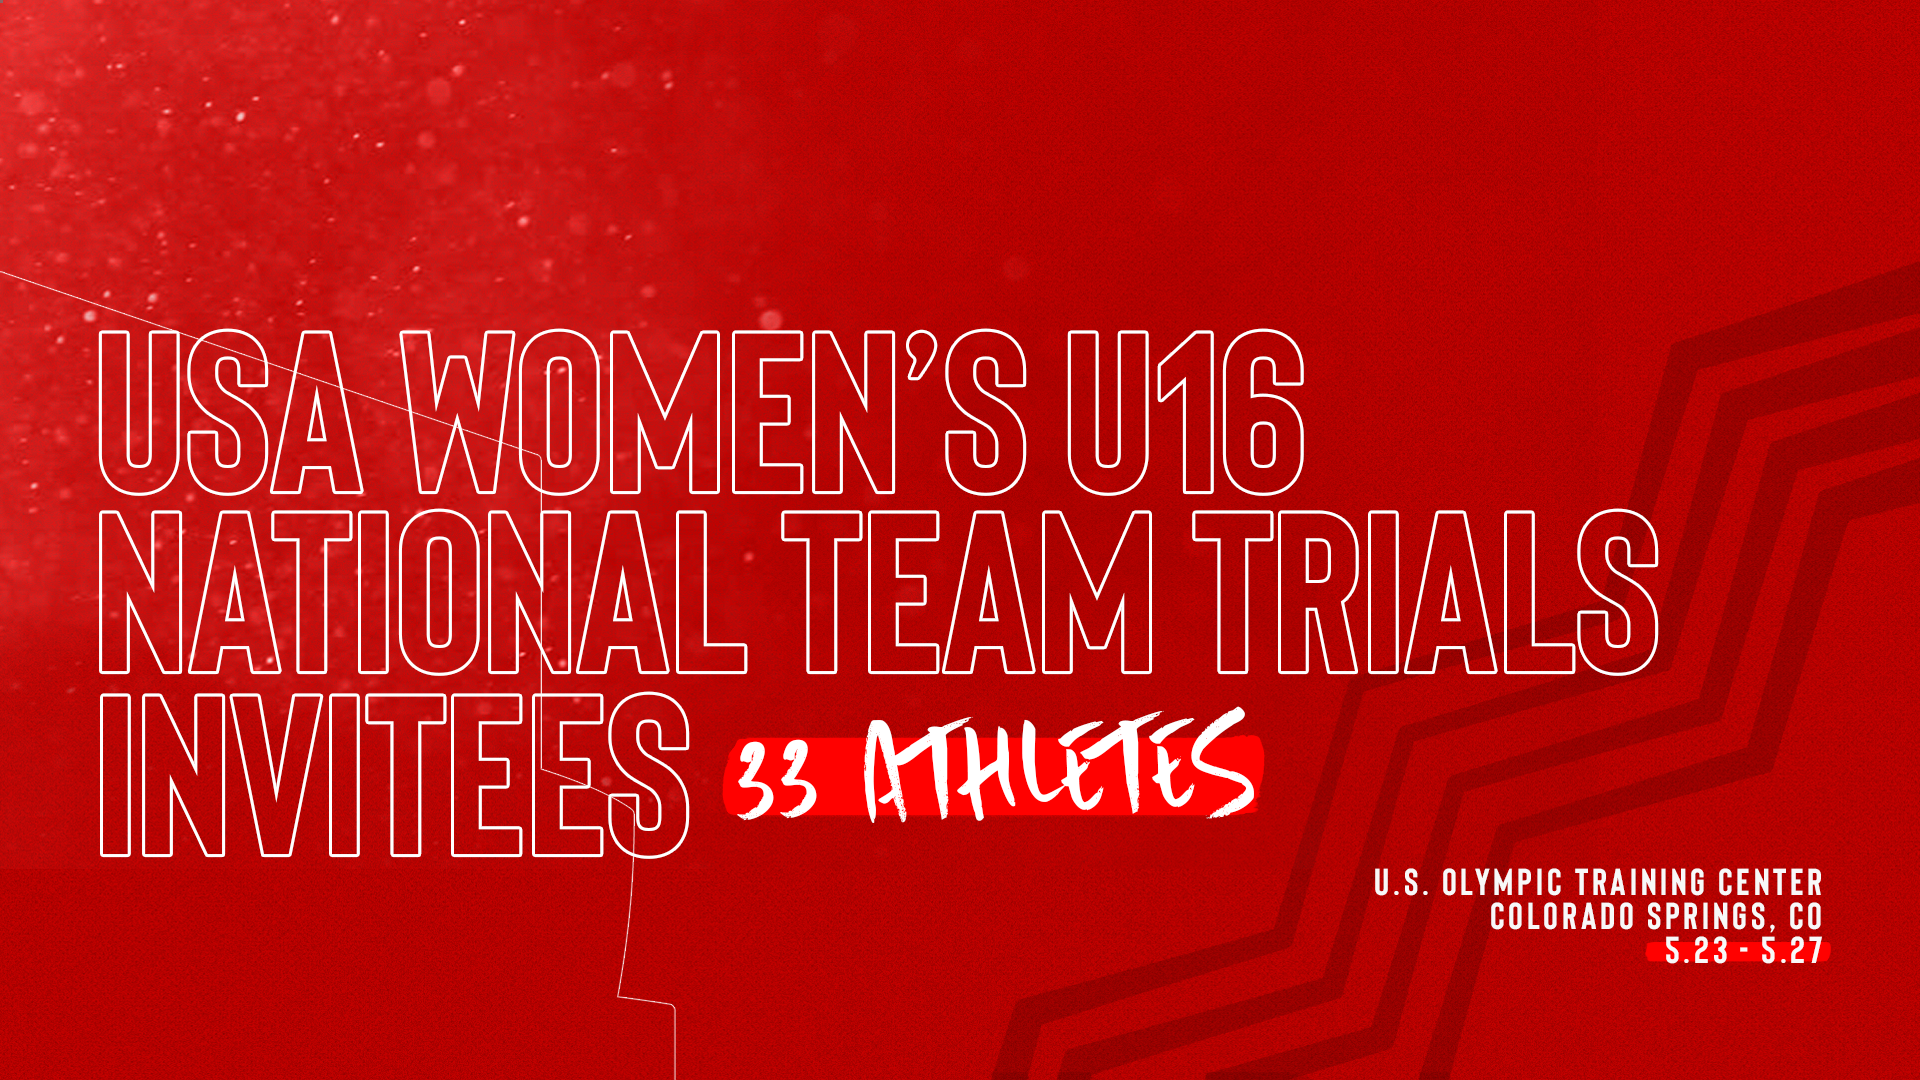 2019 USA Women's U16 Trials Invitees